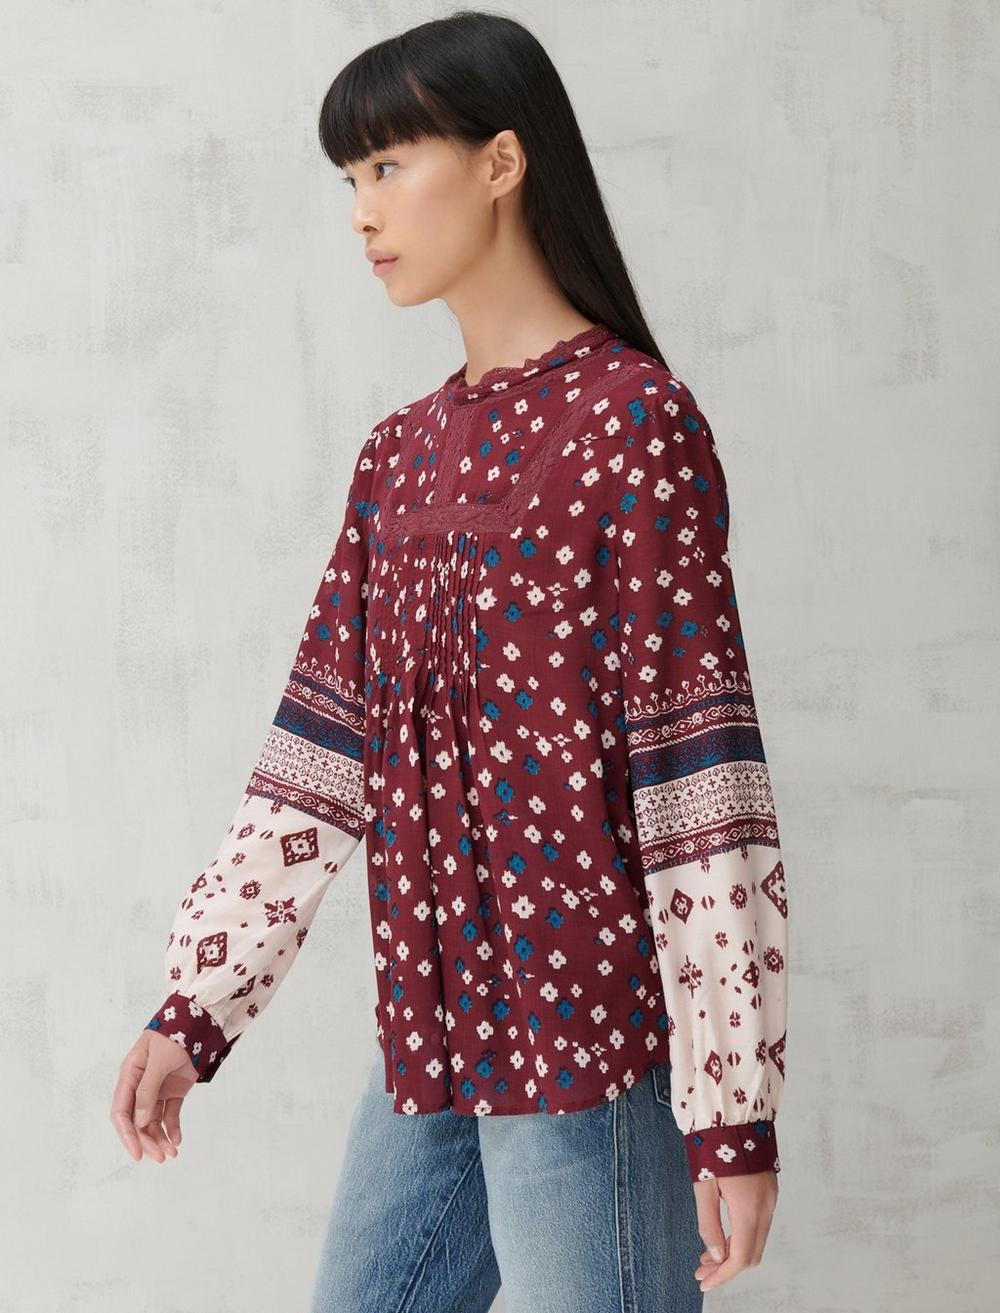 HIGH NECK LACE INSET TOP, image 3